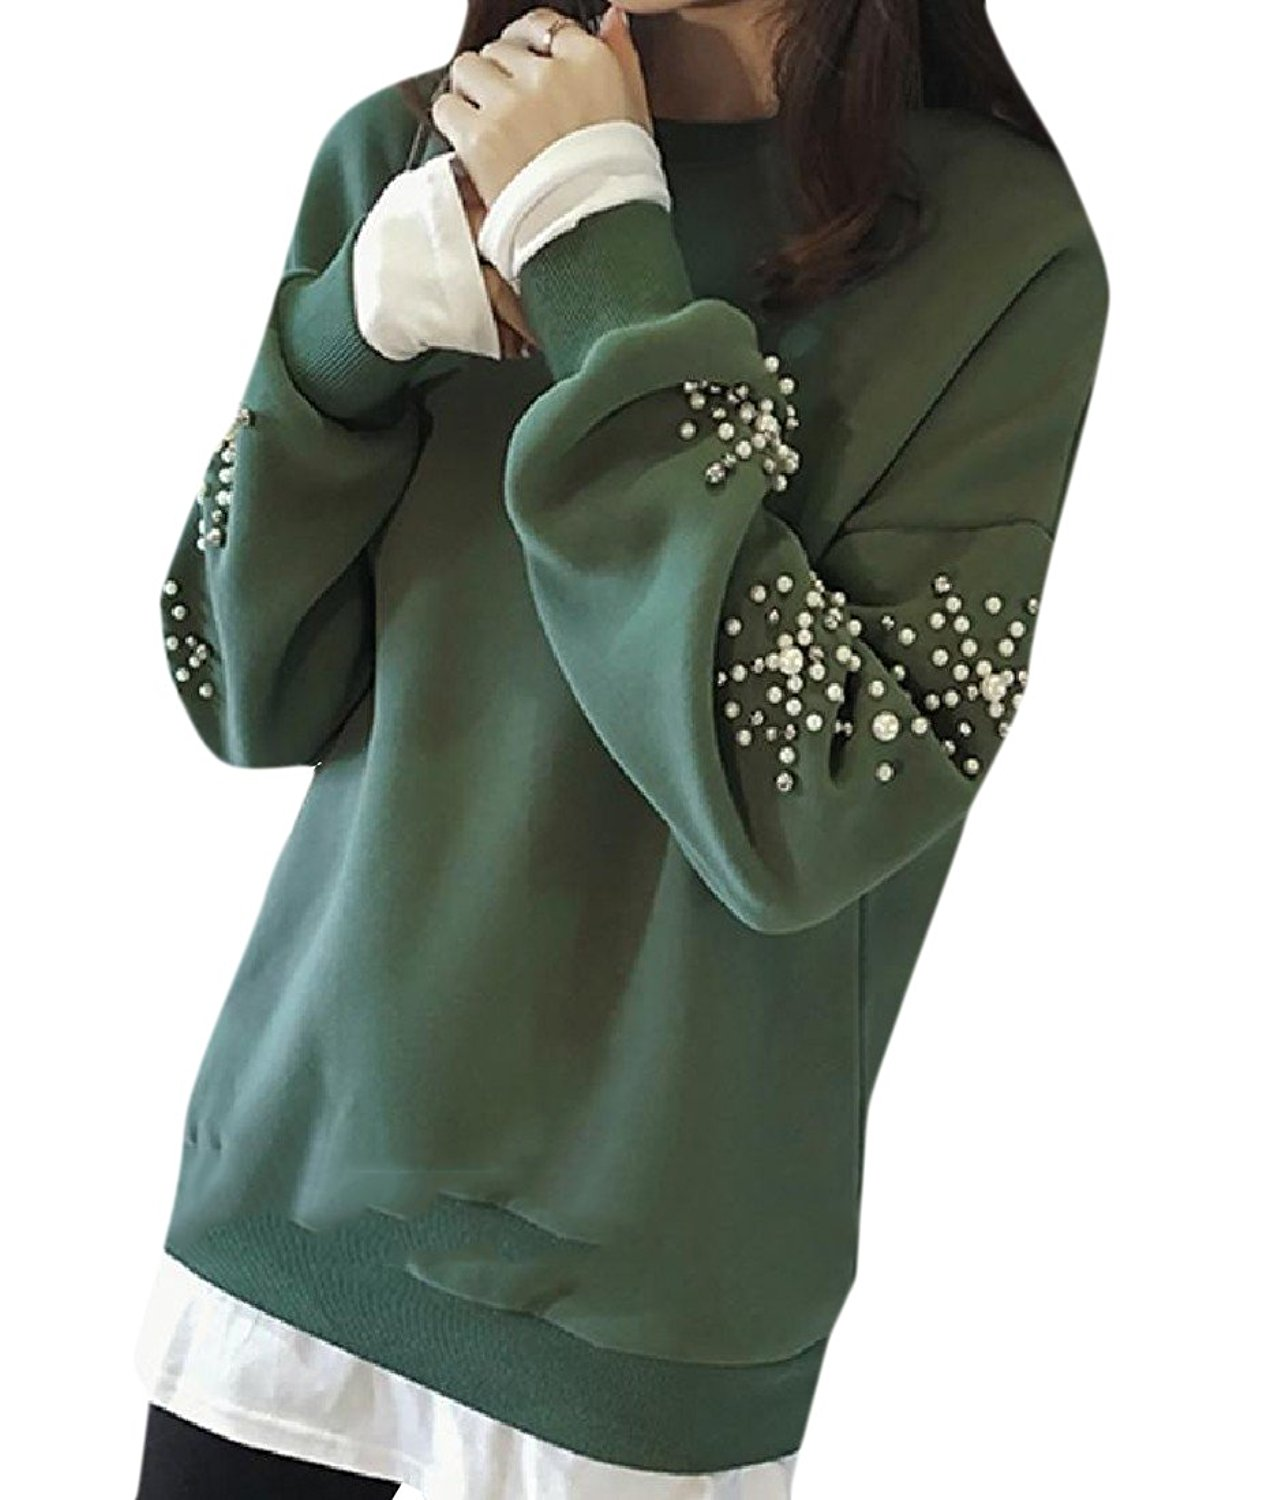 FreelyWomen Freely Women's Crew-Neck Plus-Size Solid-Colored Bead Tops Outwear